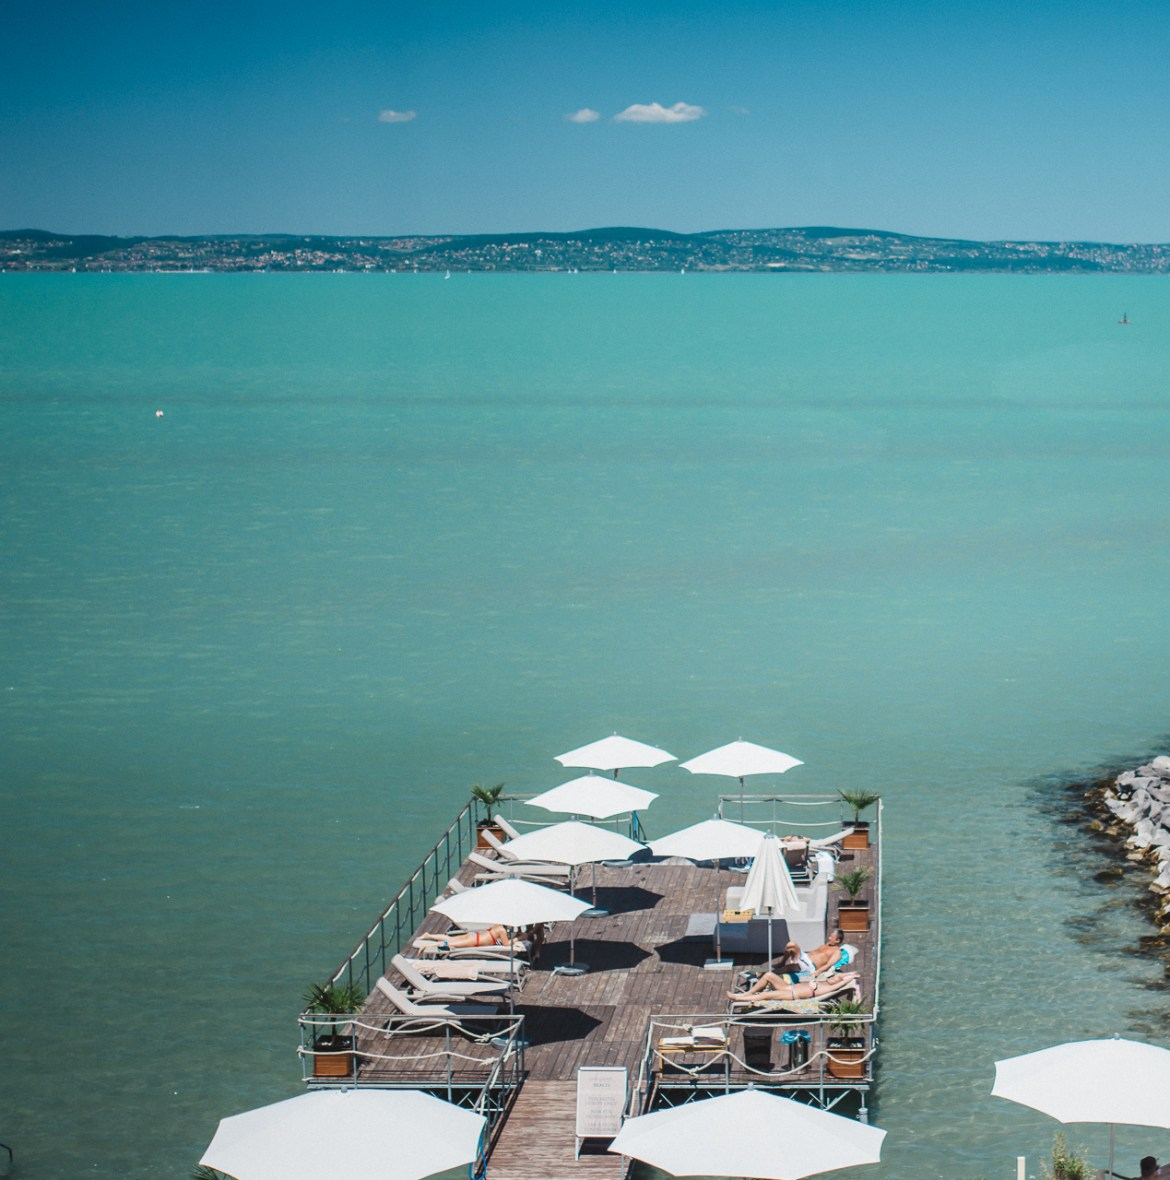 Mala Garden Lake Balaton (18 of 23)